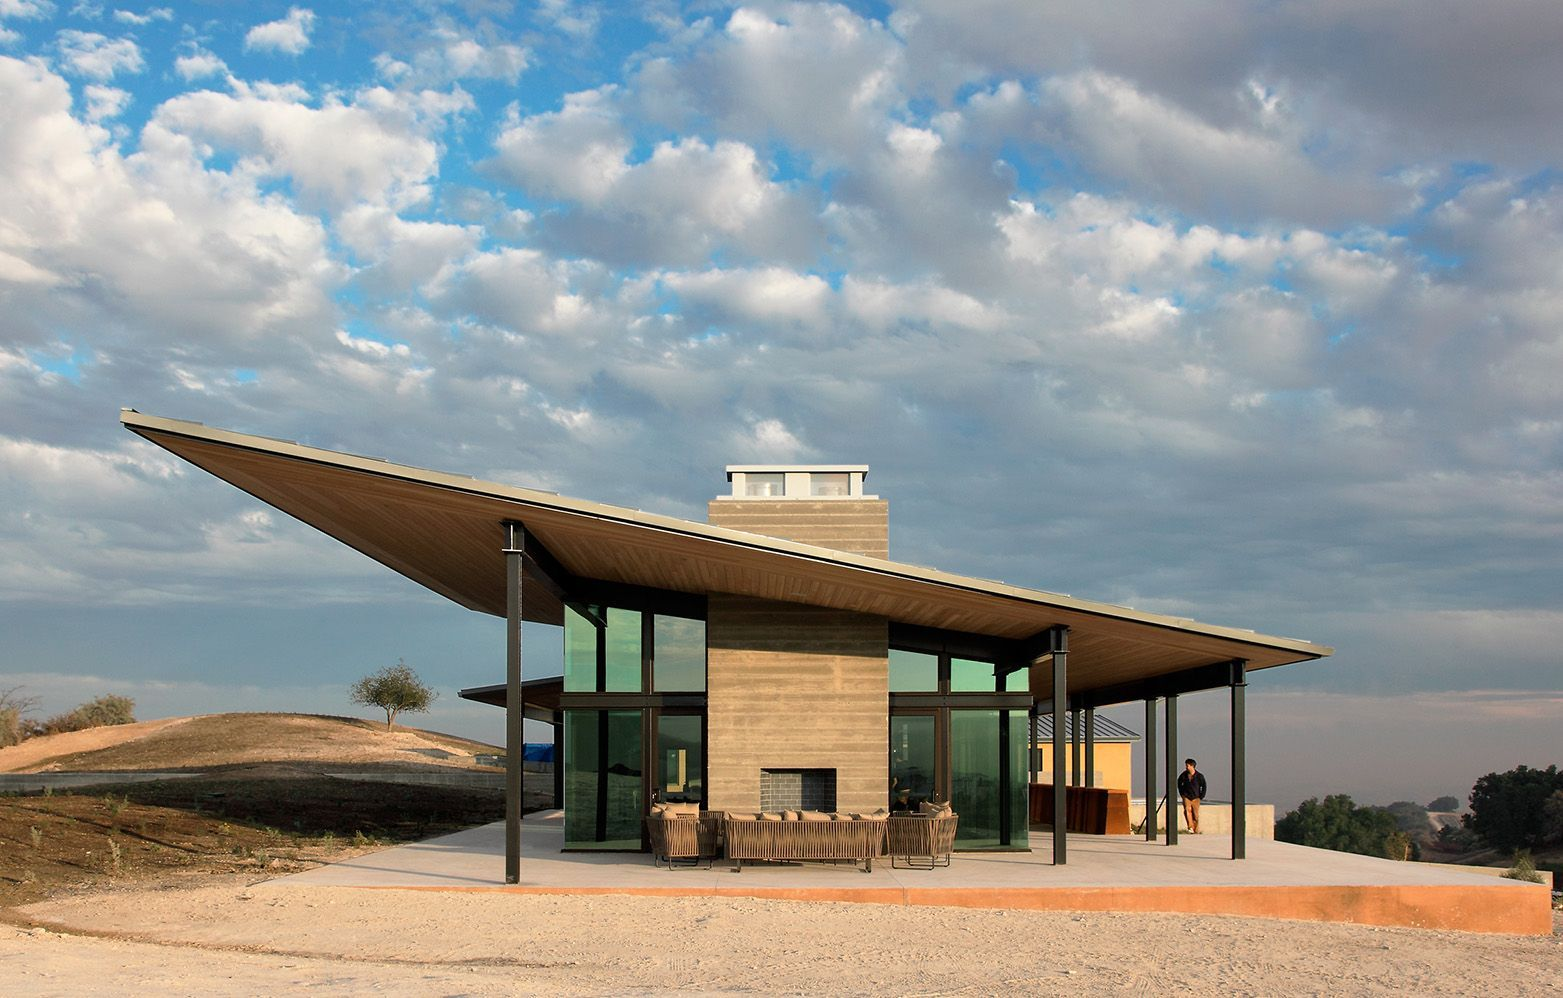 Designed by BAR Architects, a cantilevered roof is a focal